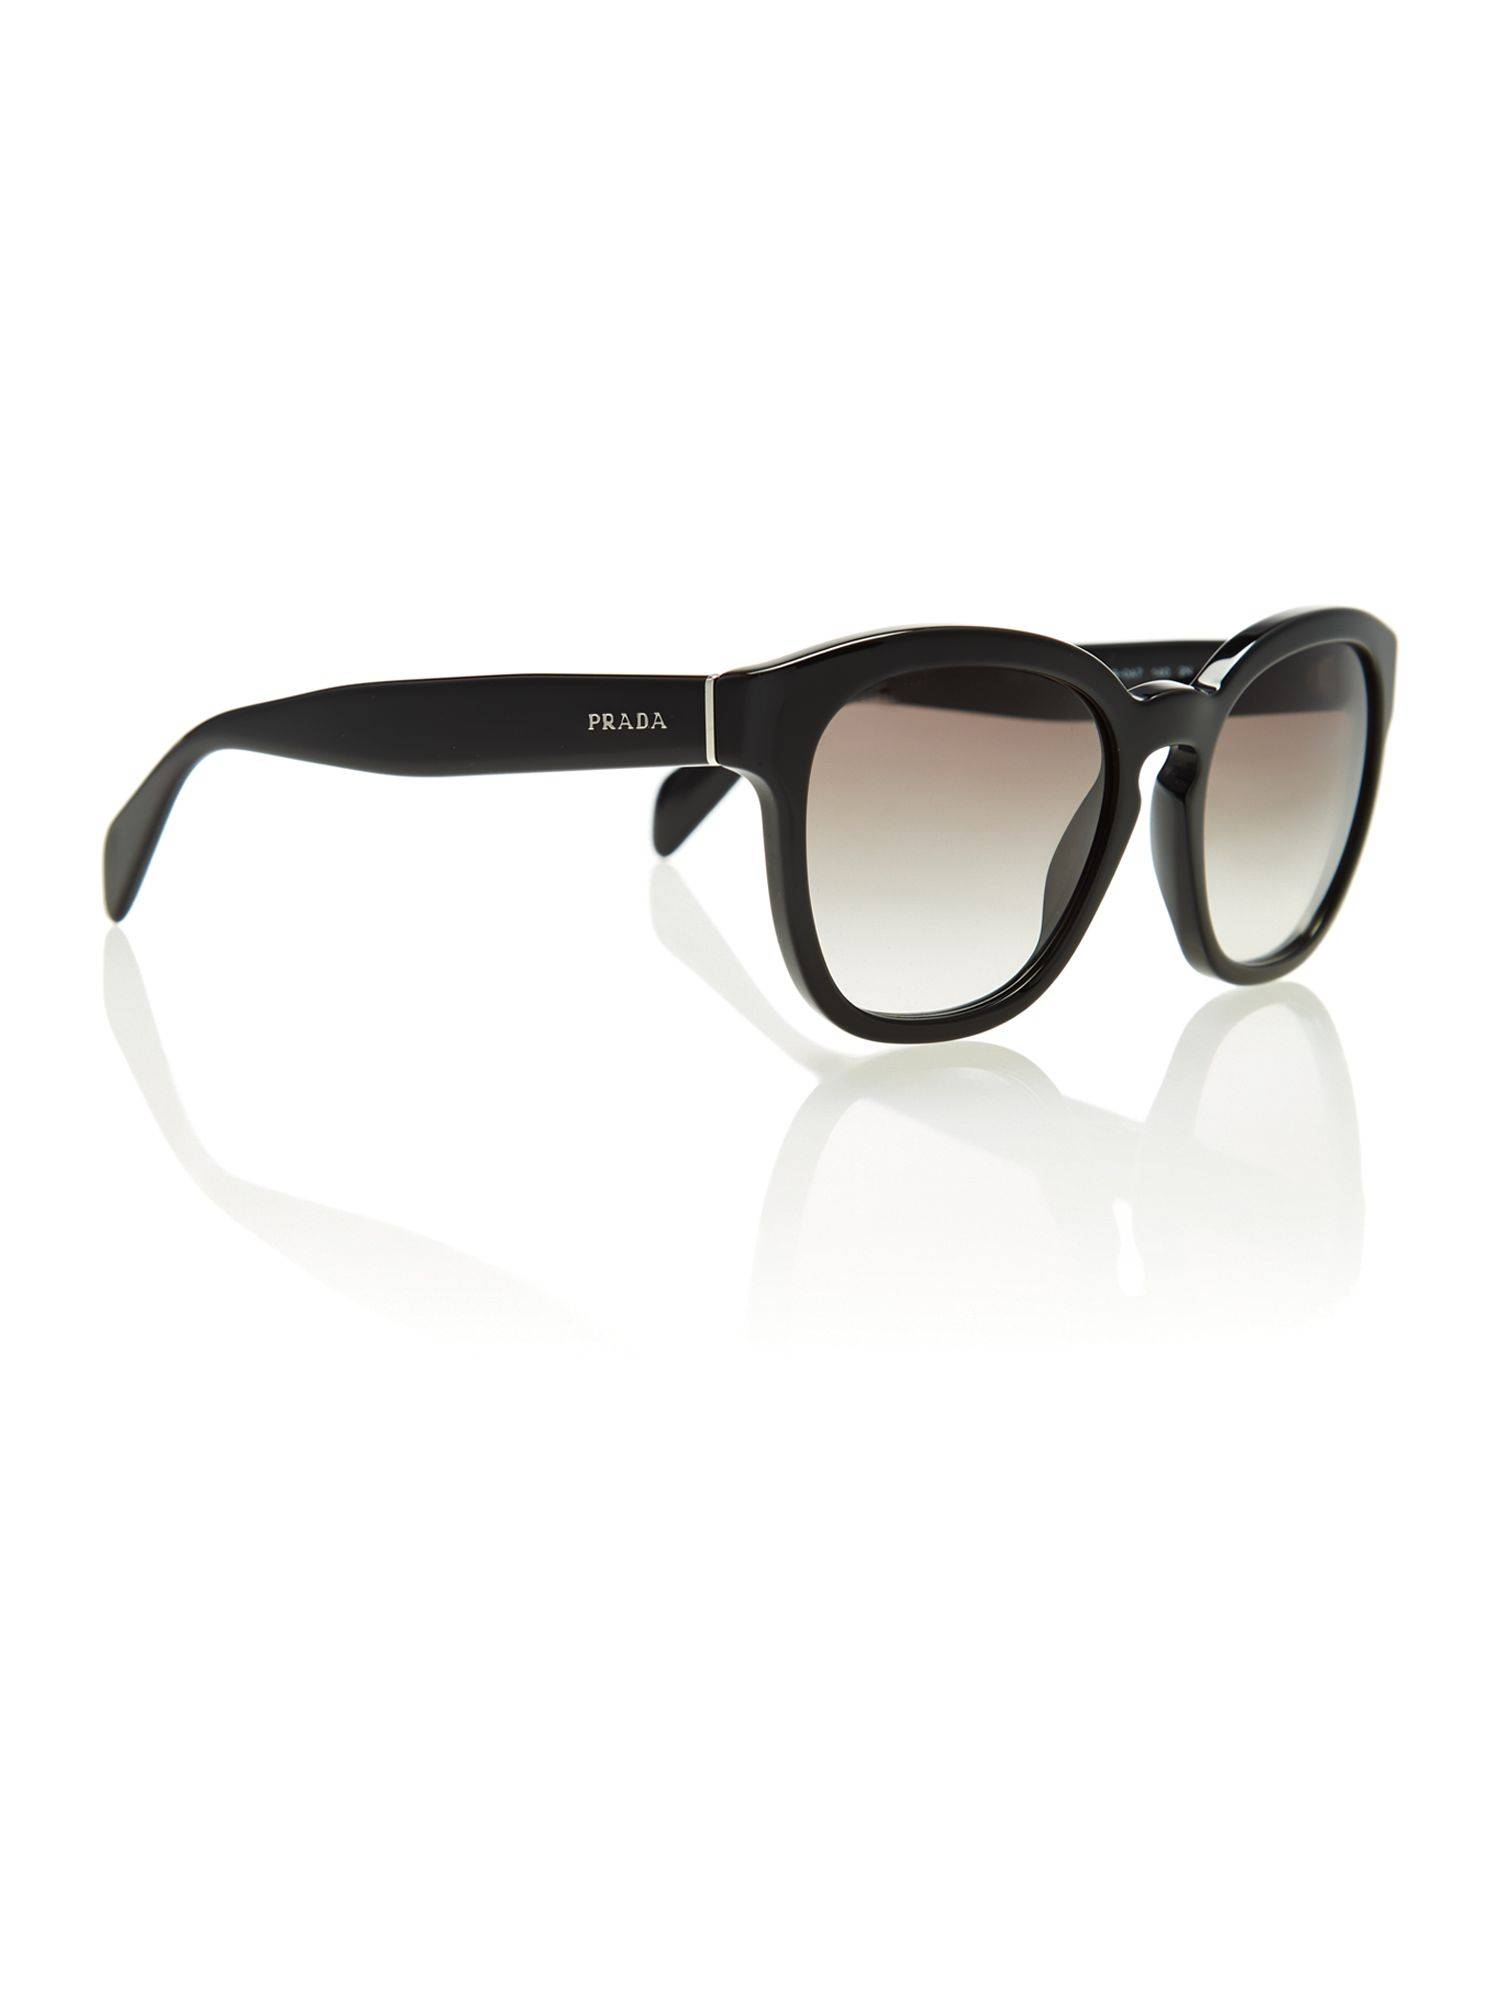 Prada Sunglasses 0PR 17RS Square sunglasses